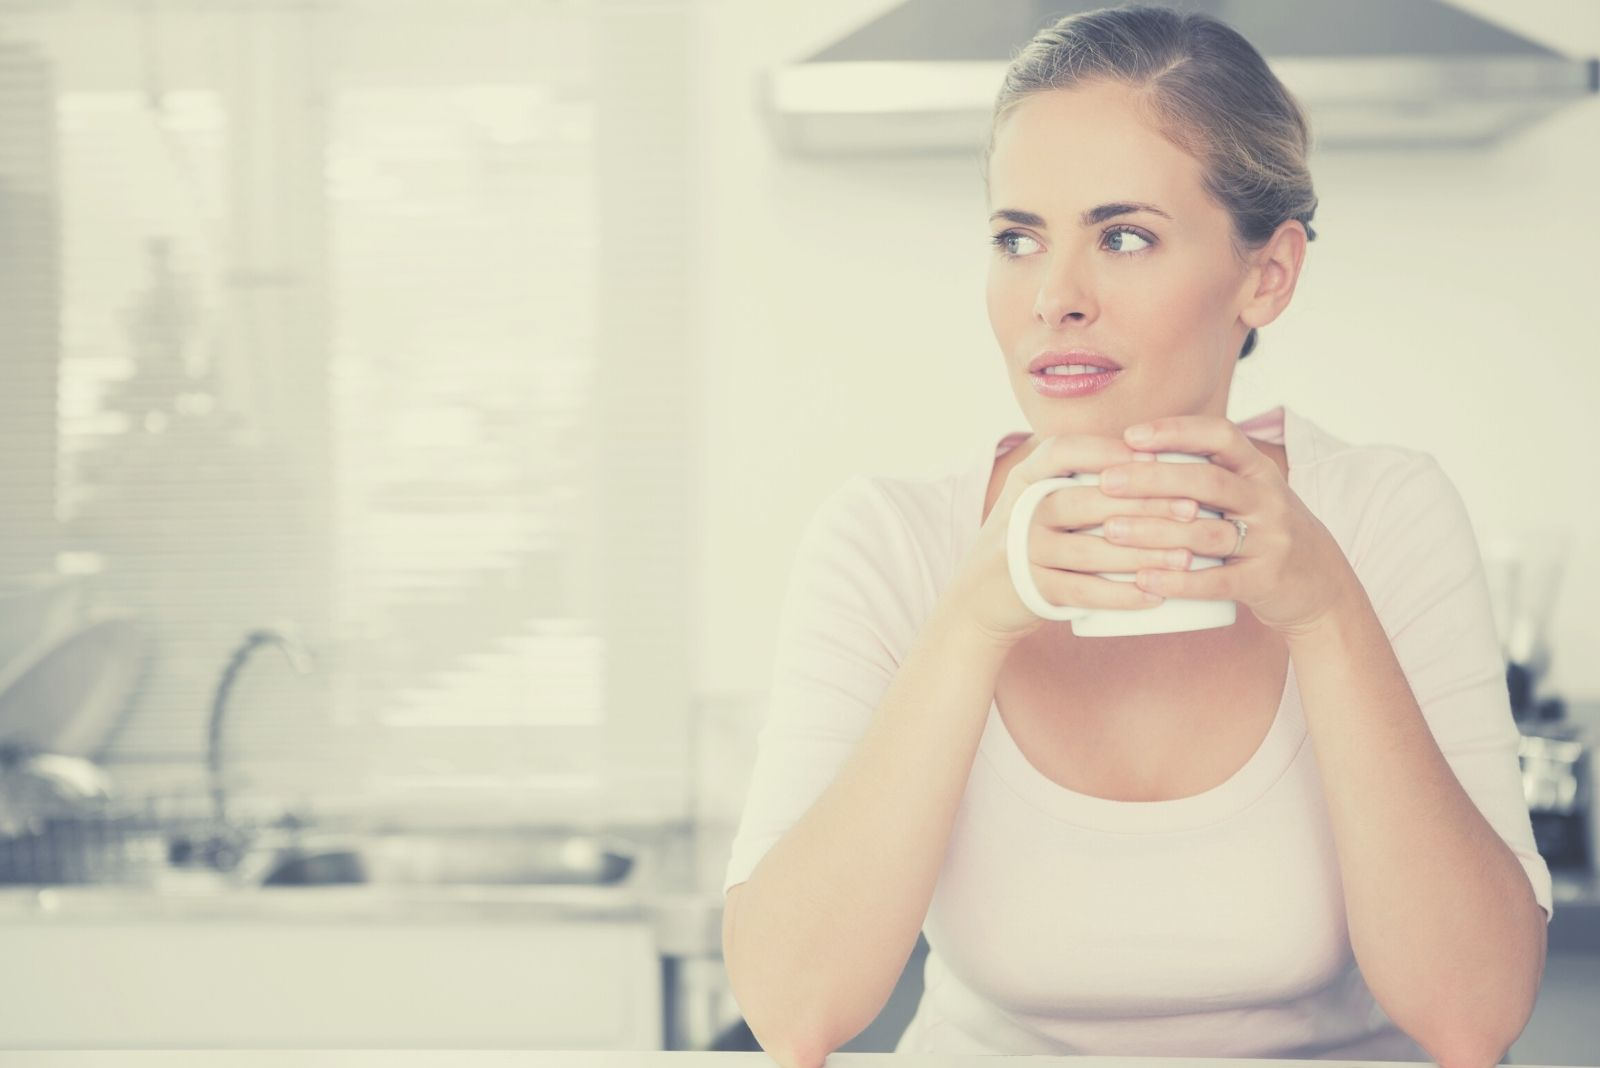 pensive house wife drinking coffee in the kitchen